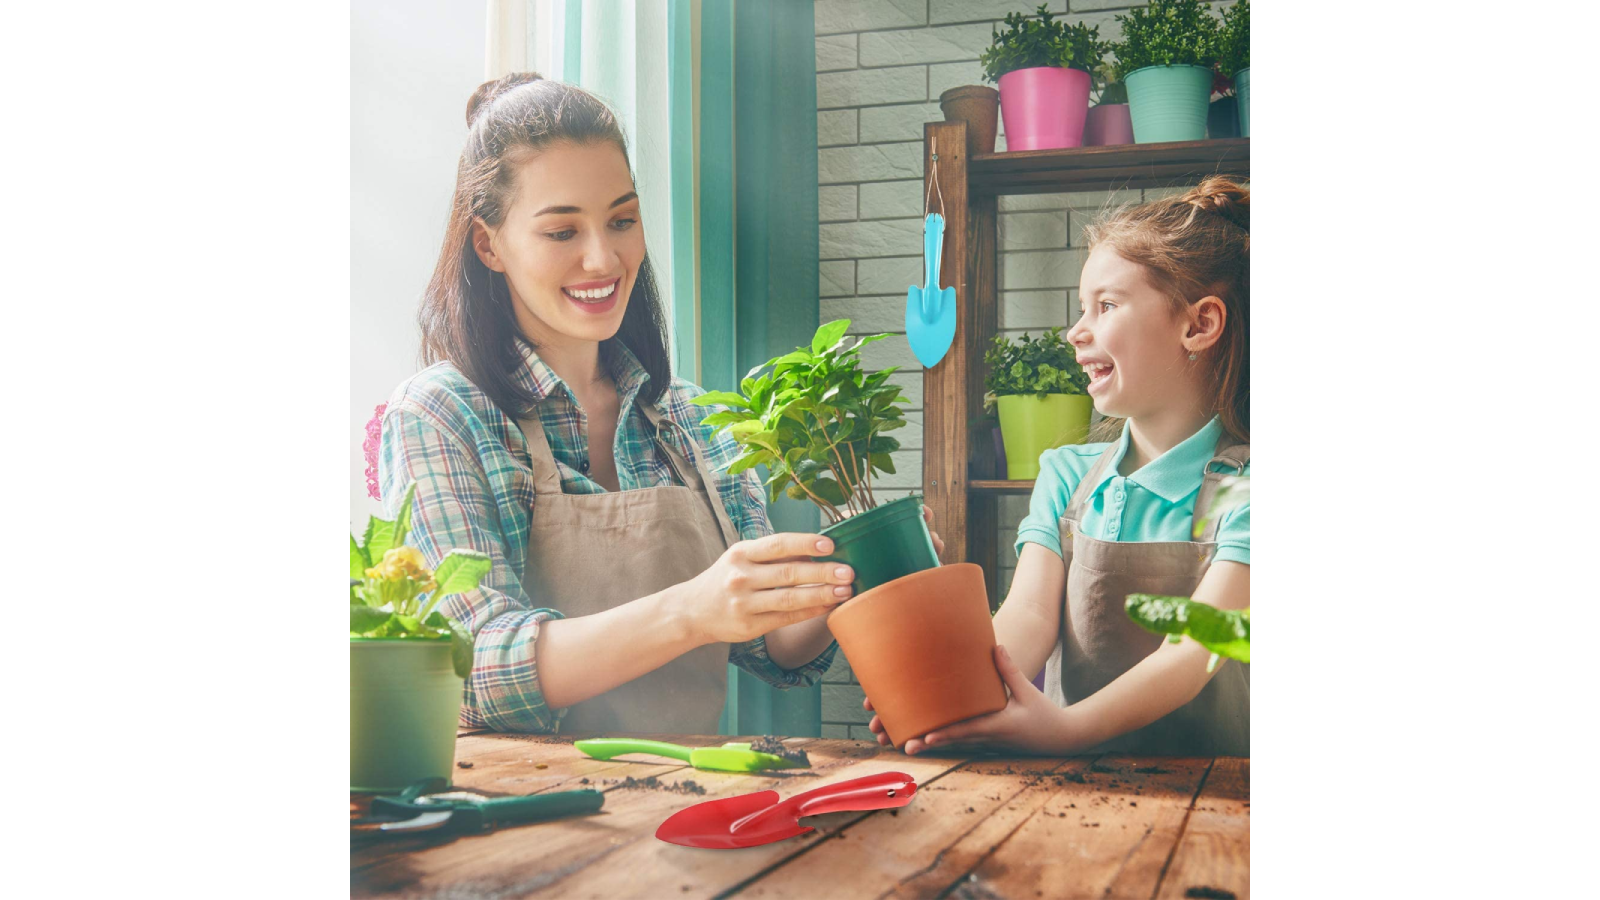 Woman and girl at a table, potting a flower with trowels.